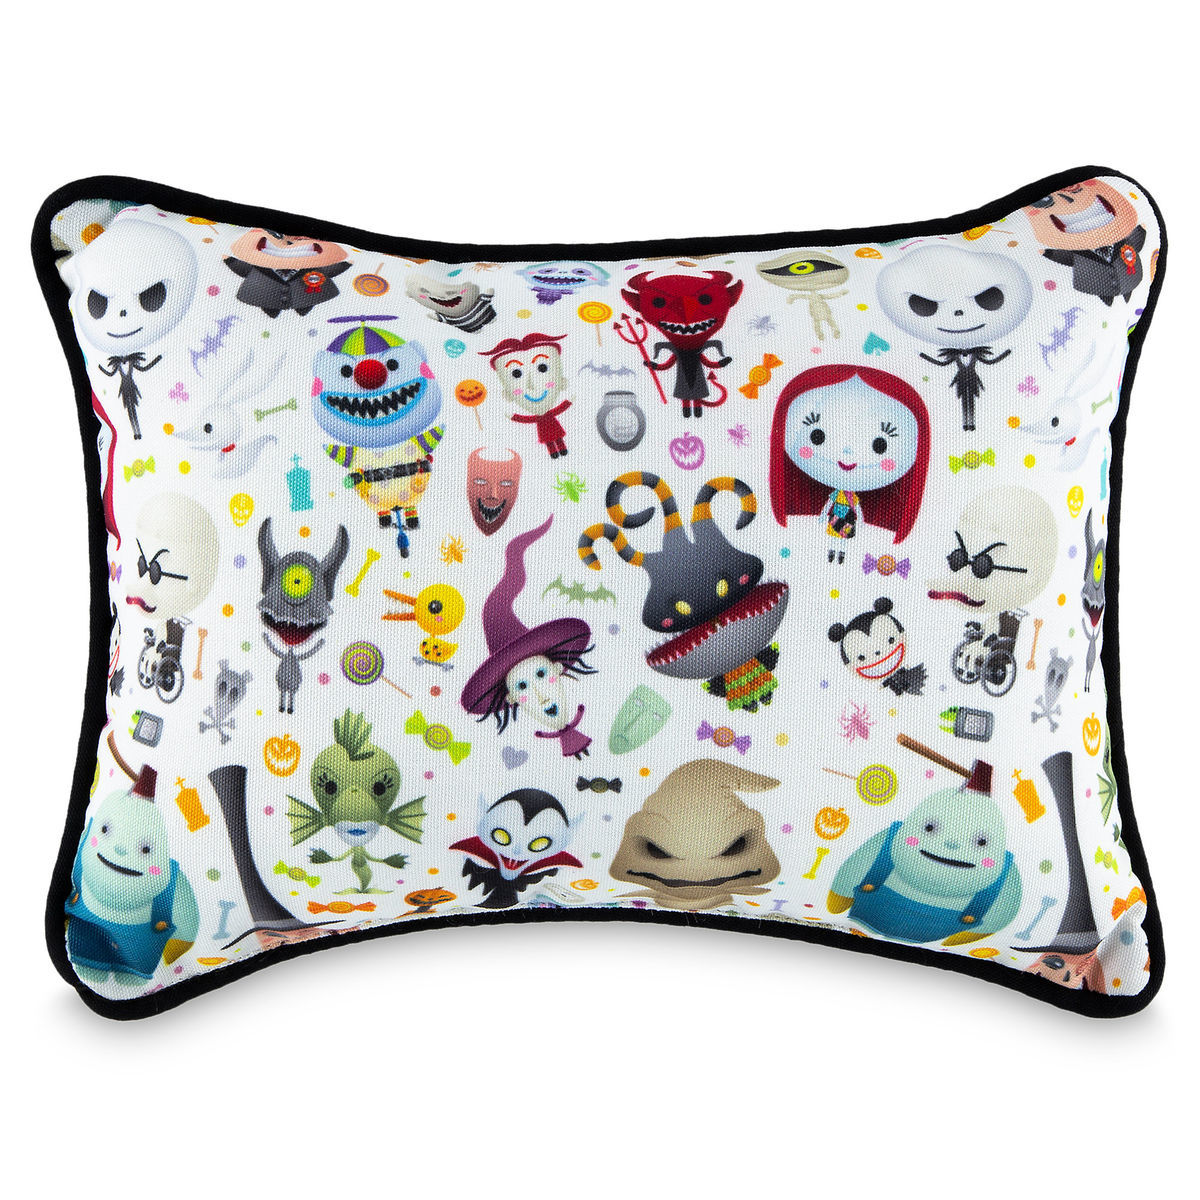 The Nightmare Before Christmas Pillow by Jerrod Maruyama | shopDisney